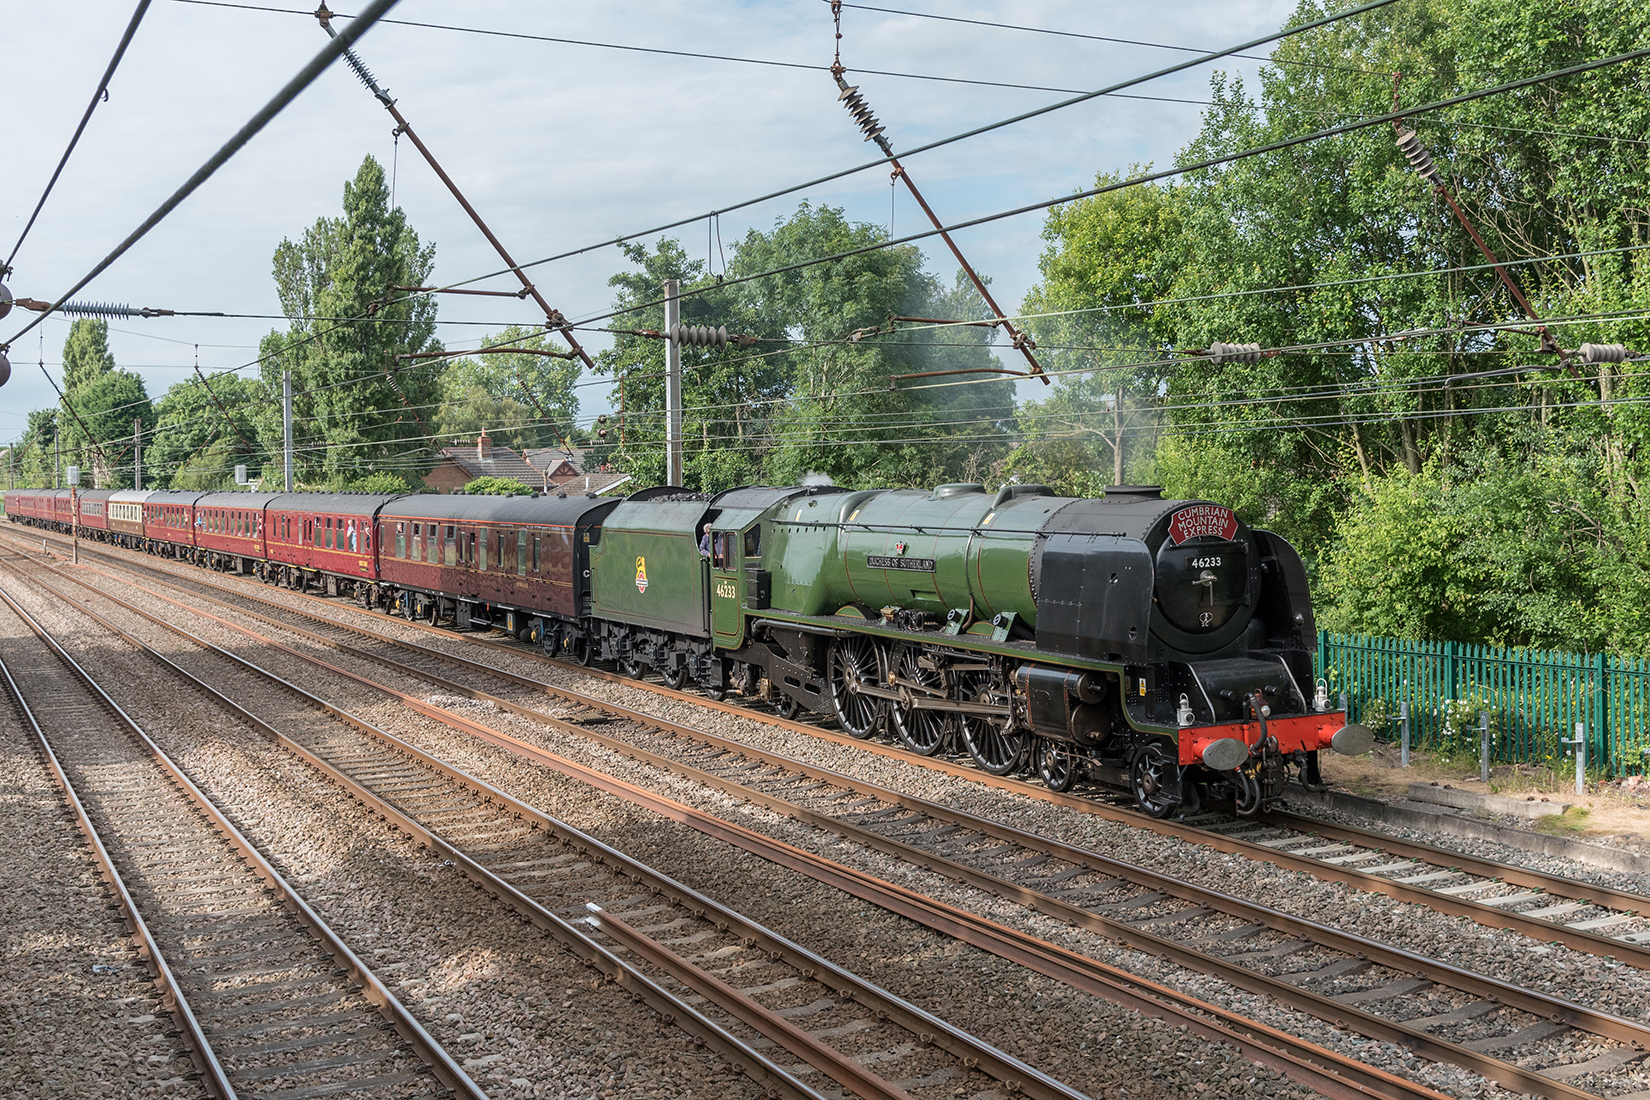 'Duchess of Sutherland' passing Euxton